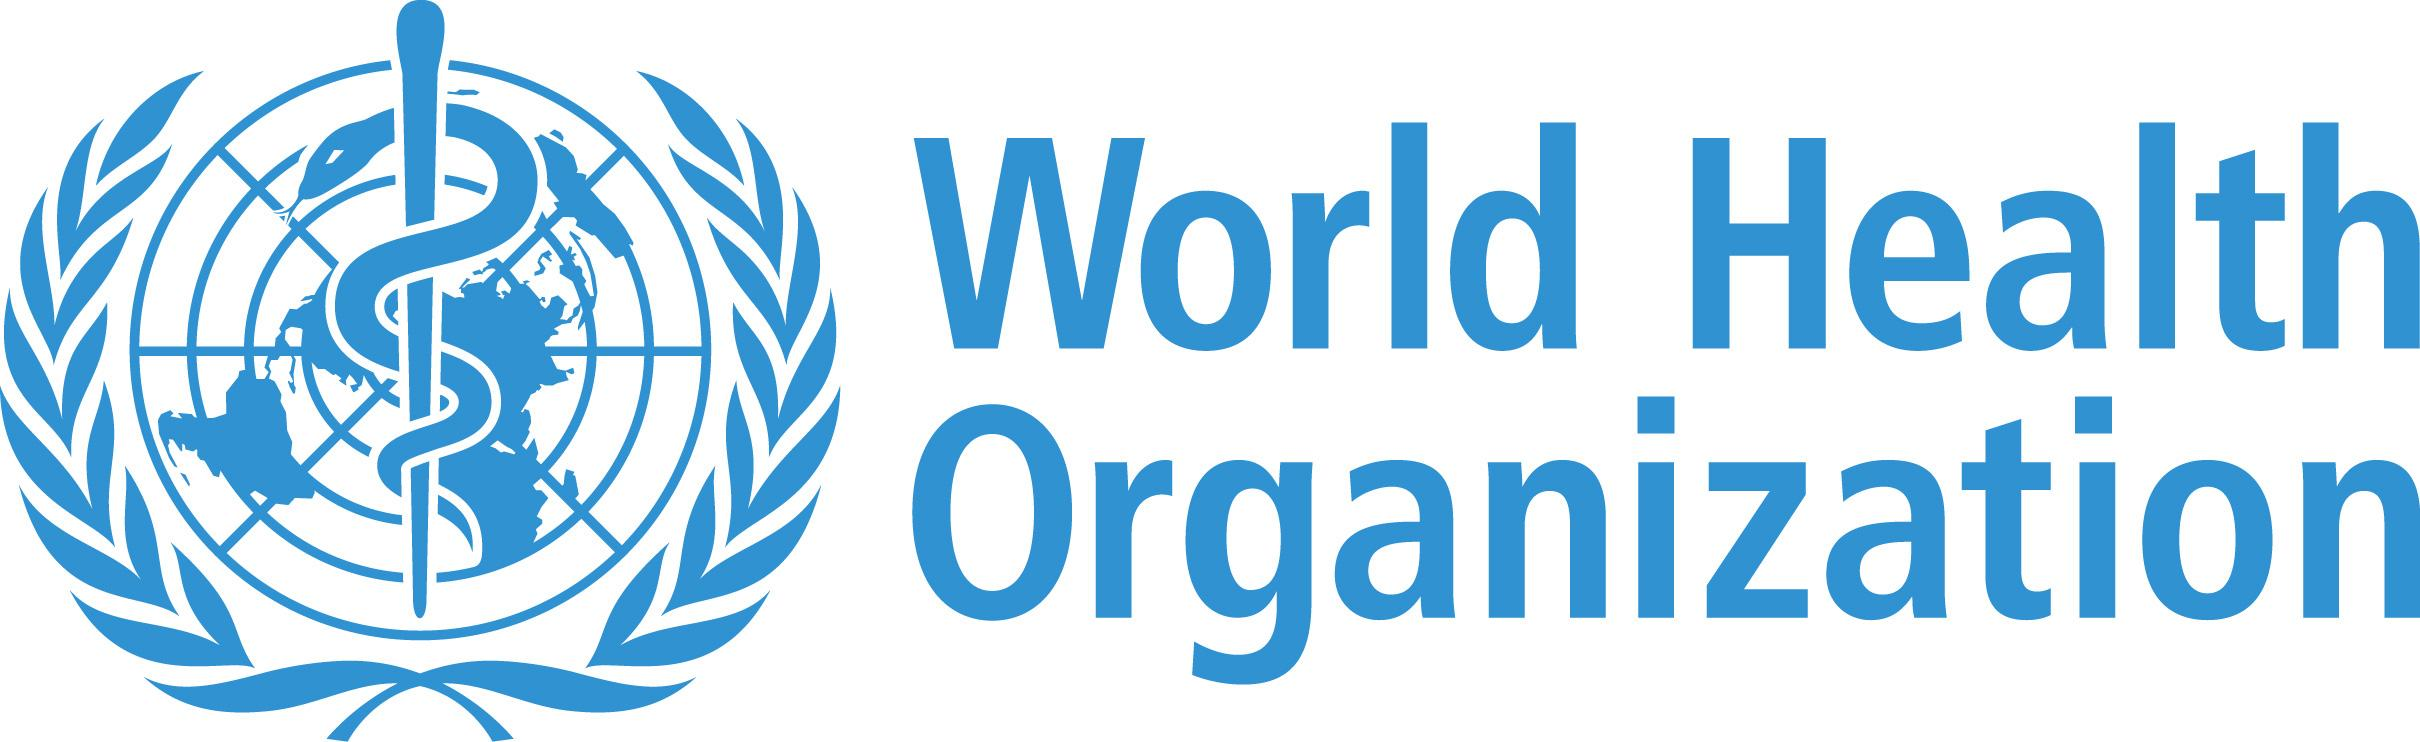 Projectification of the organisational world